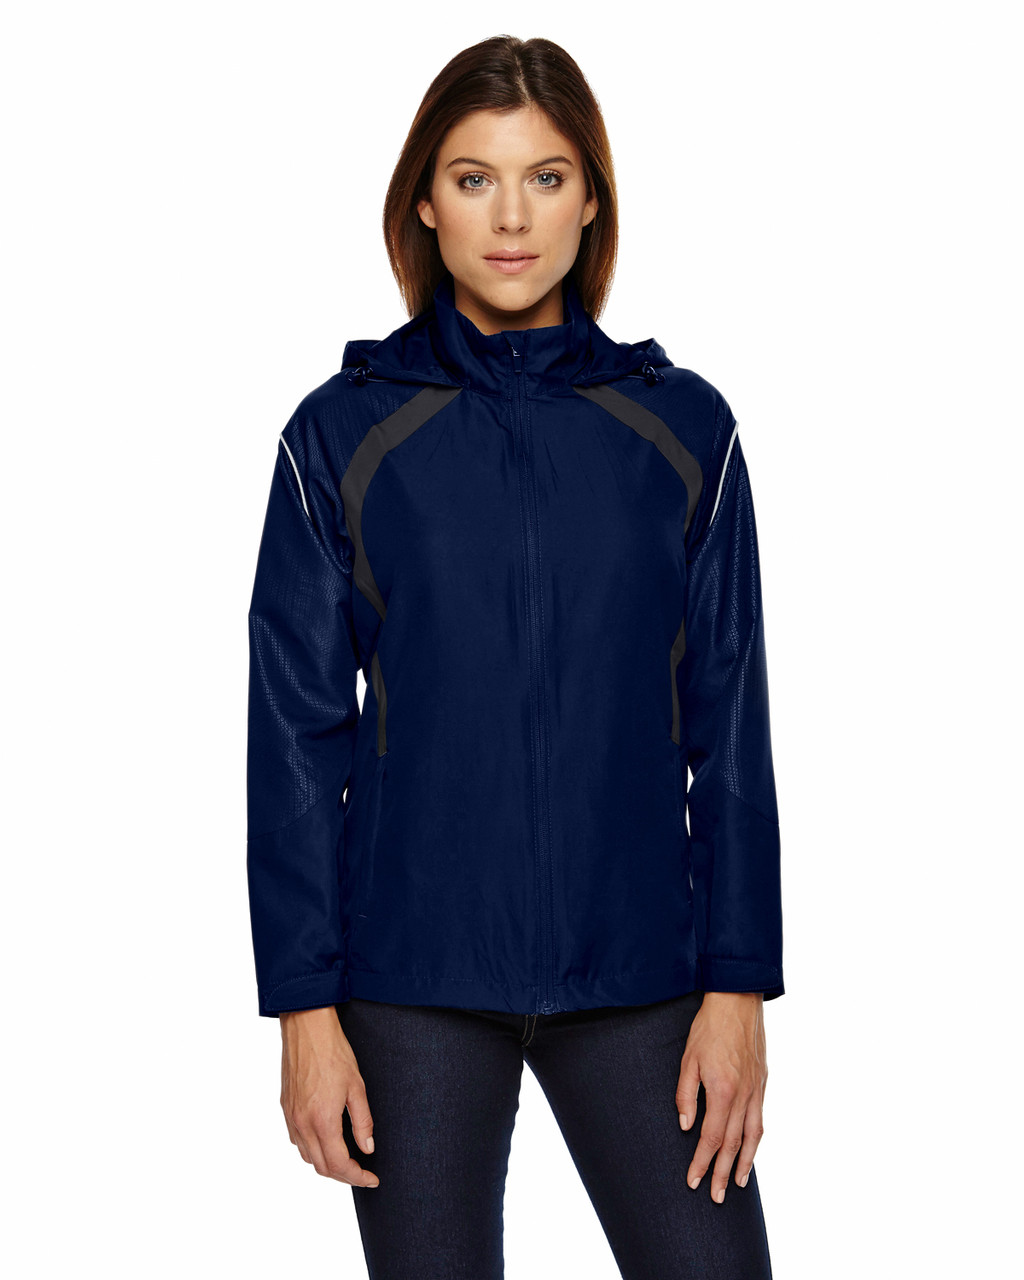 Night - 78168 North End Sirius Lightweight Jacket with Embossed Print | Blankclothing.ca